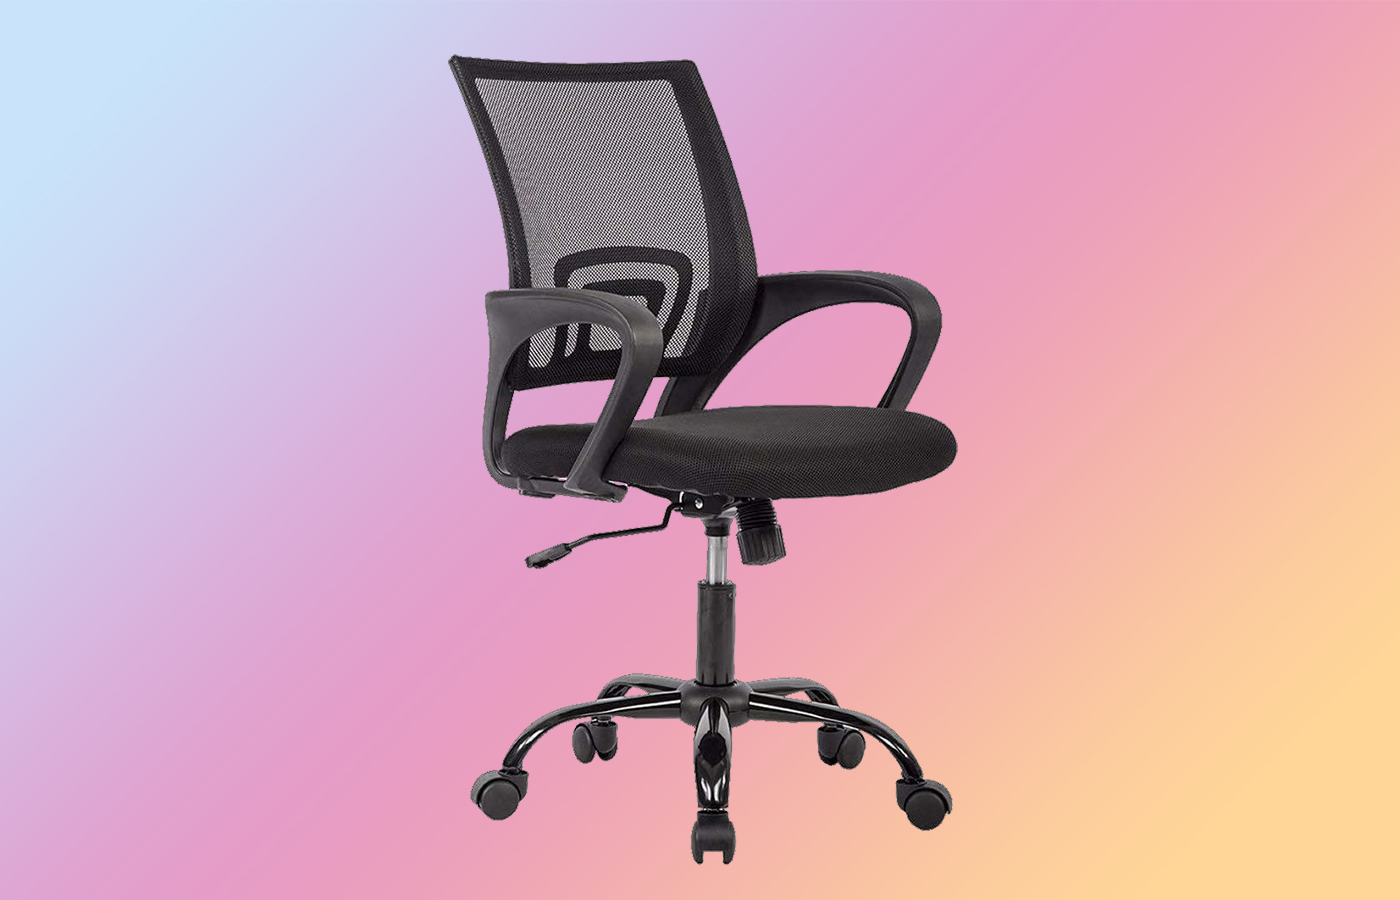 Amazon's best-selling desk chair is the lowest price it's been yet